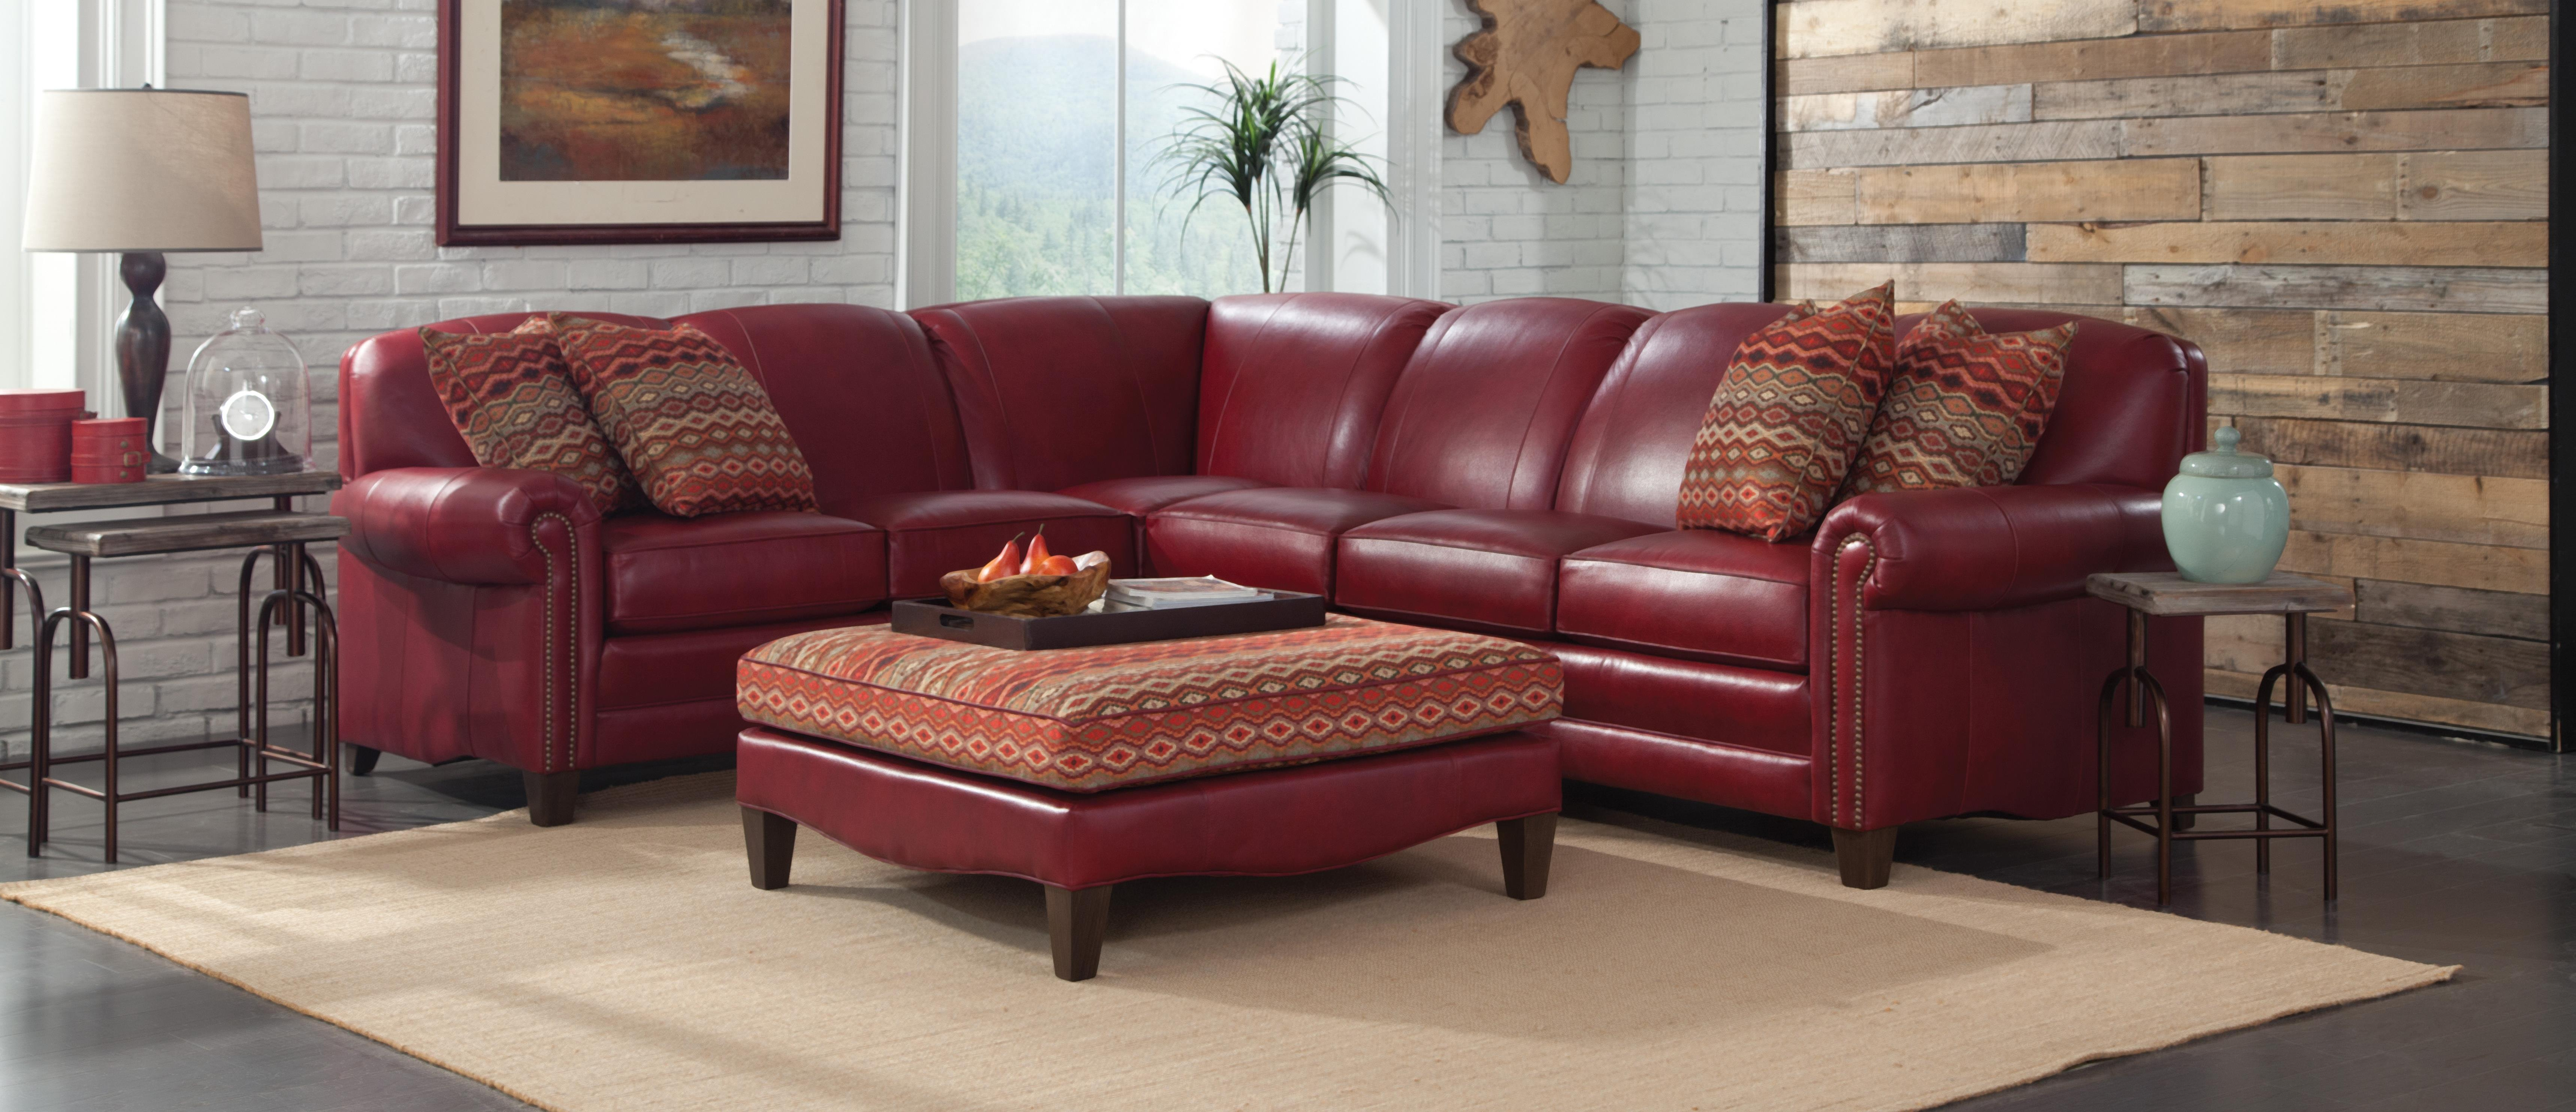 Red Sectional with Pillows